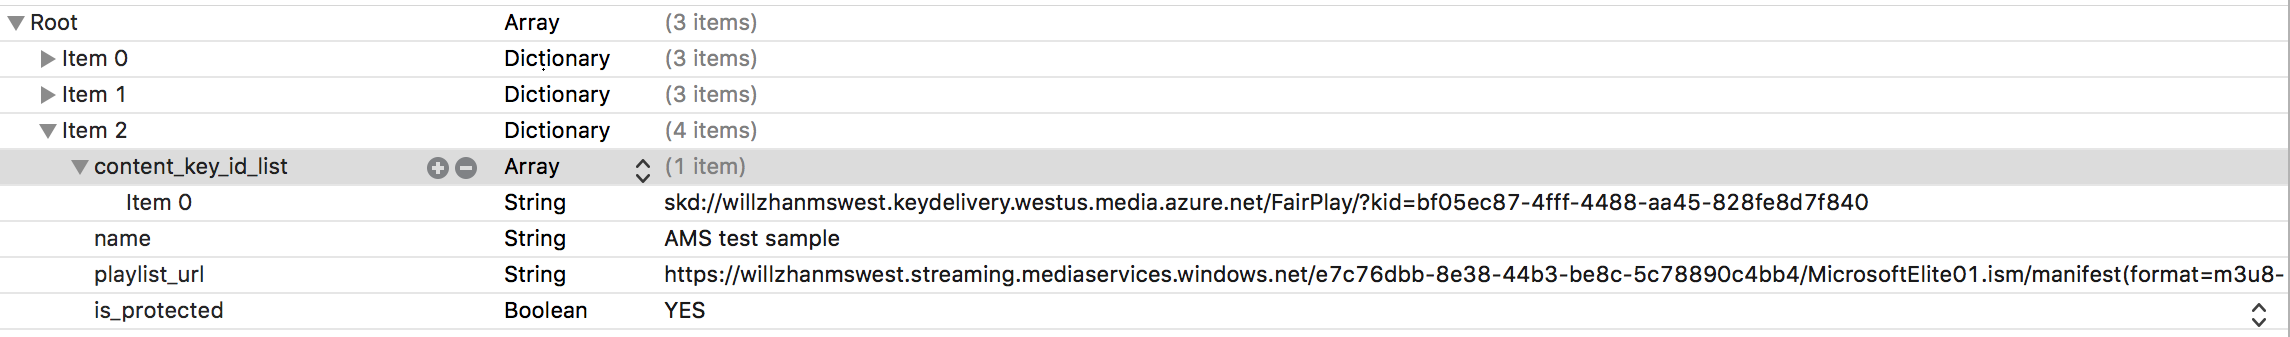 Protect HLS content with offline Apple FairPlay - Azure